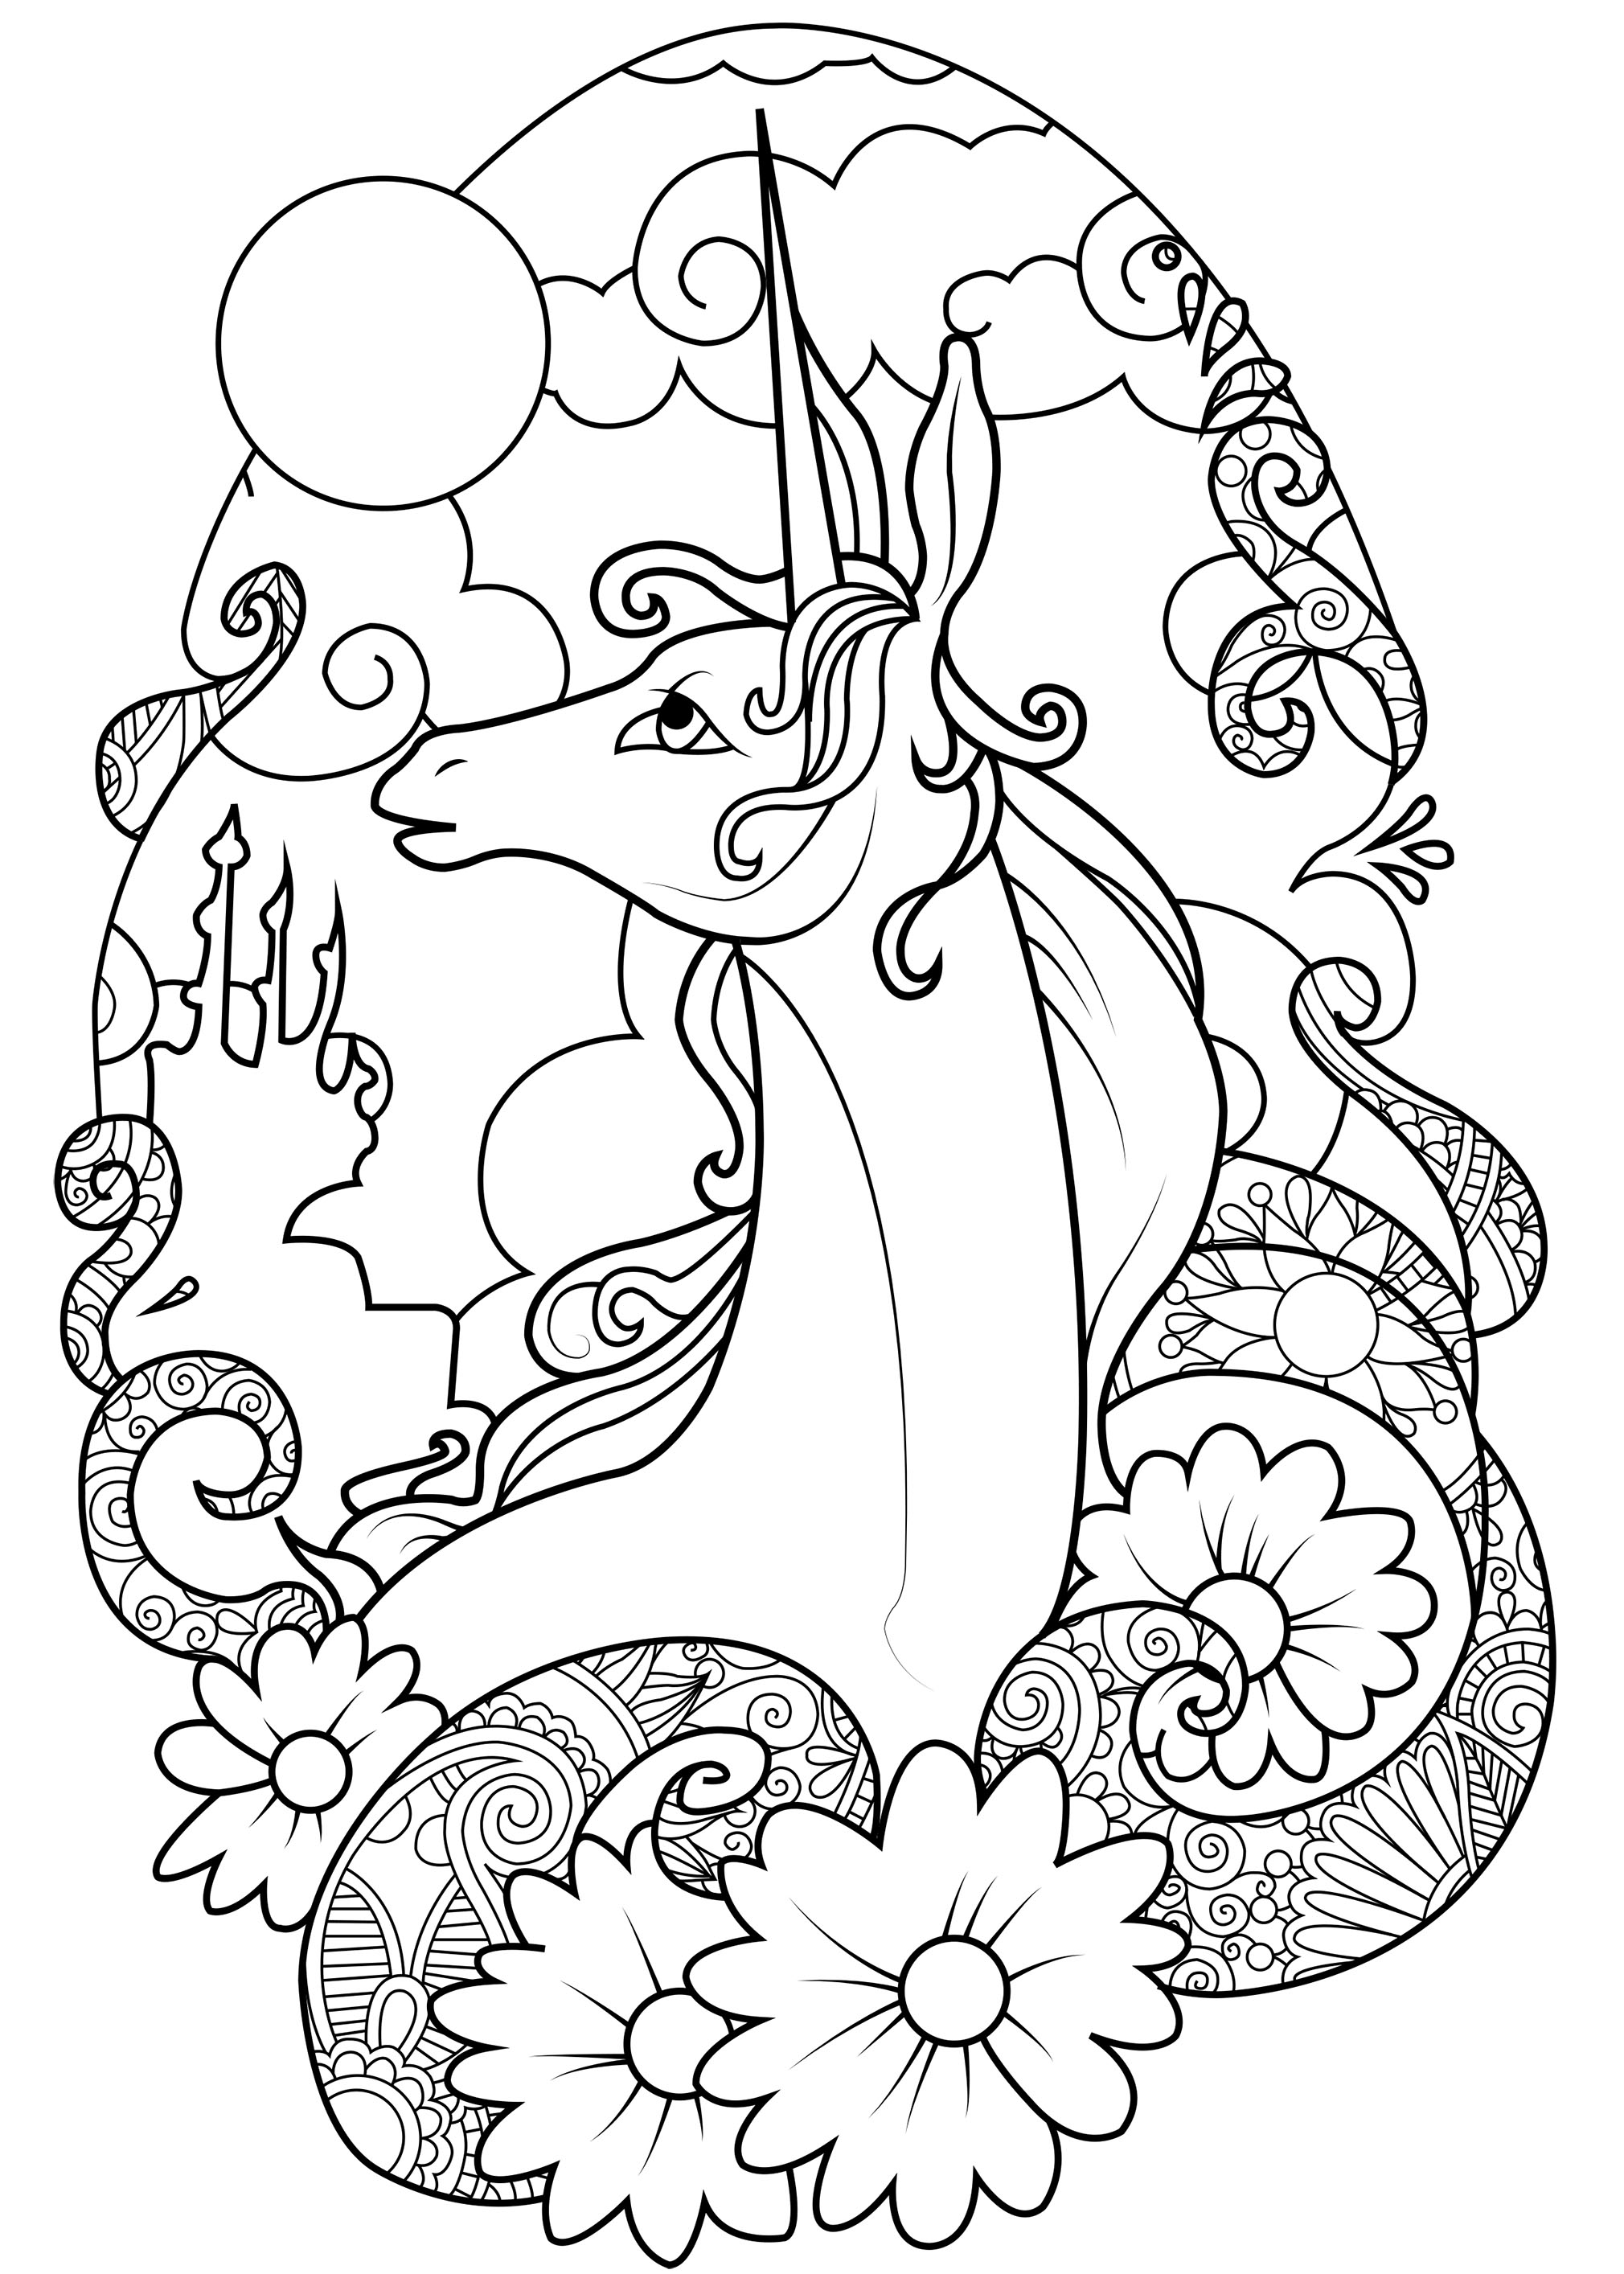 - Fairy Unicorn - Unicorns Adult Coloring Pages